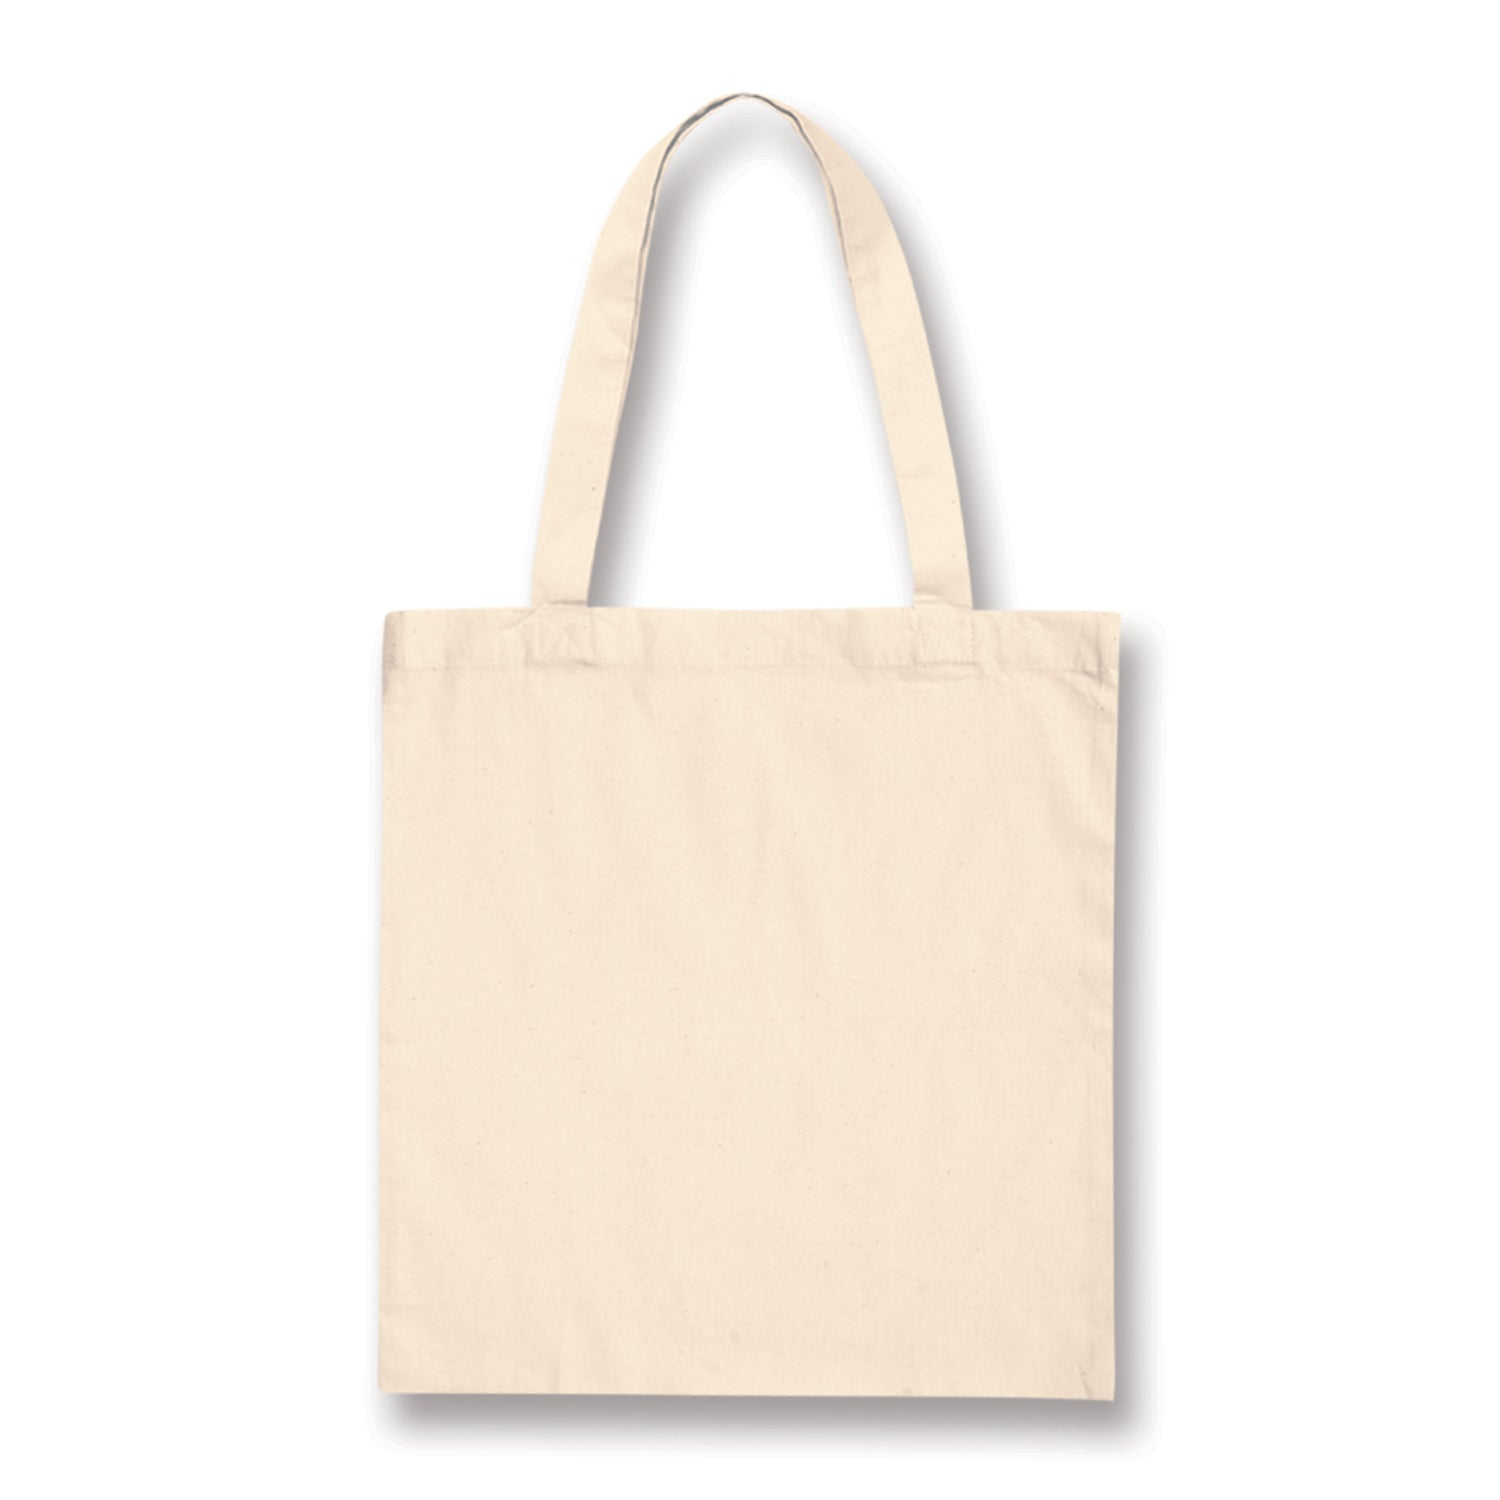 Sonnet Cotton Tote Bag